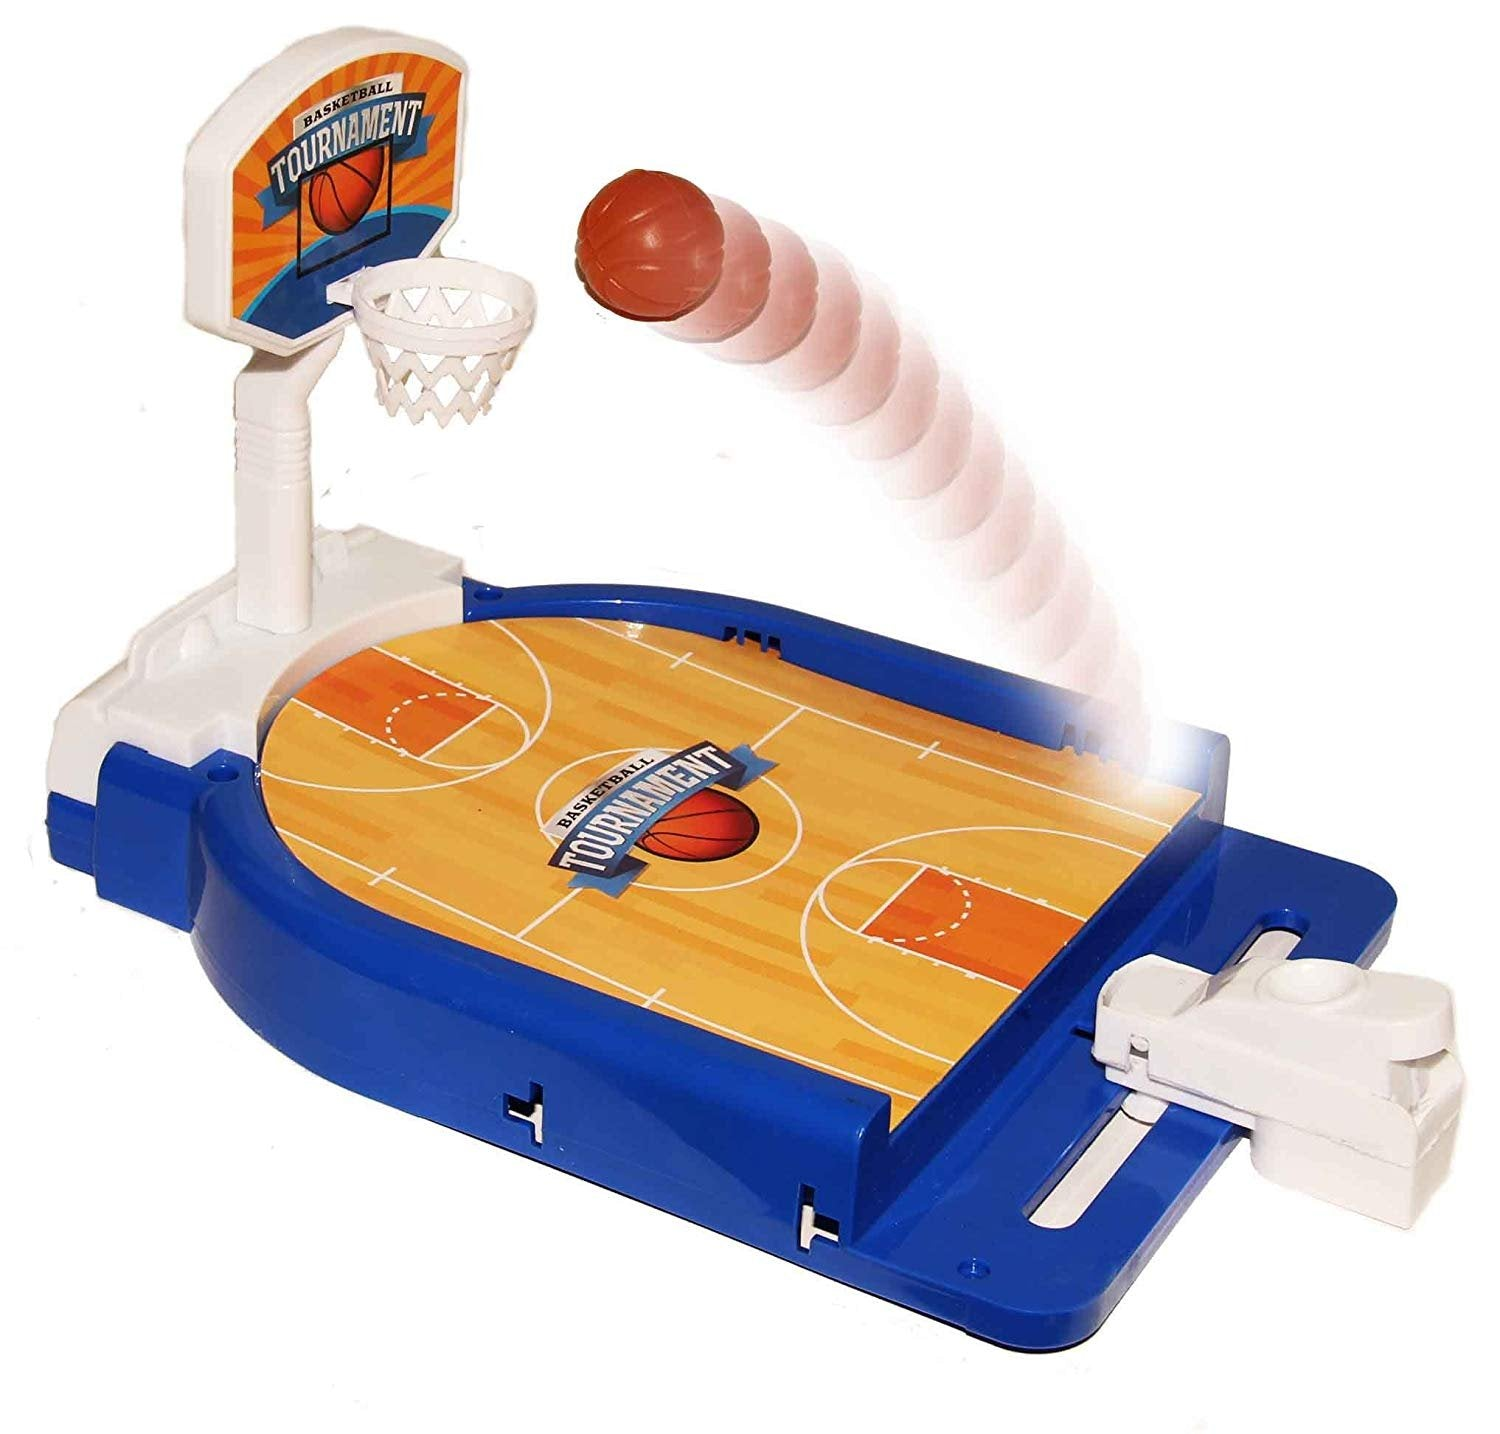 Dazzling Toys Mini Basketball Table Game - Desktop Arcade Hoops Slap Shot Miniature Game for Ages 3 and Up | Classic Mini Basketball Tournament Table Top Games for Sports Fans and Fanatics